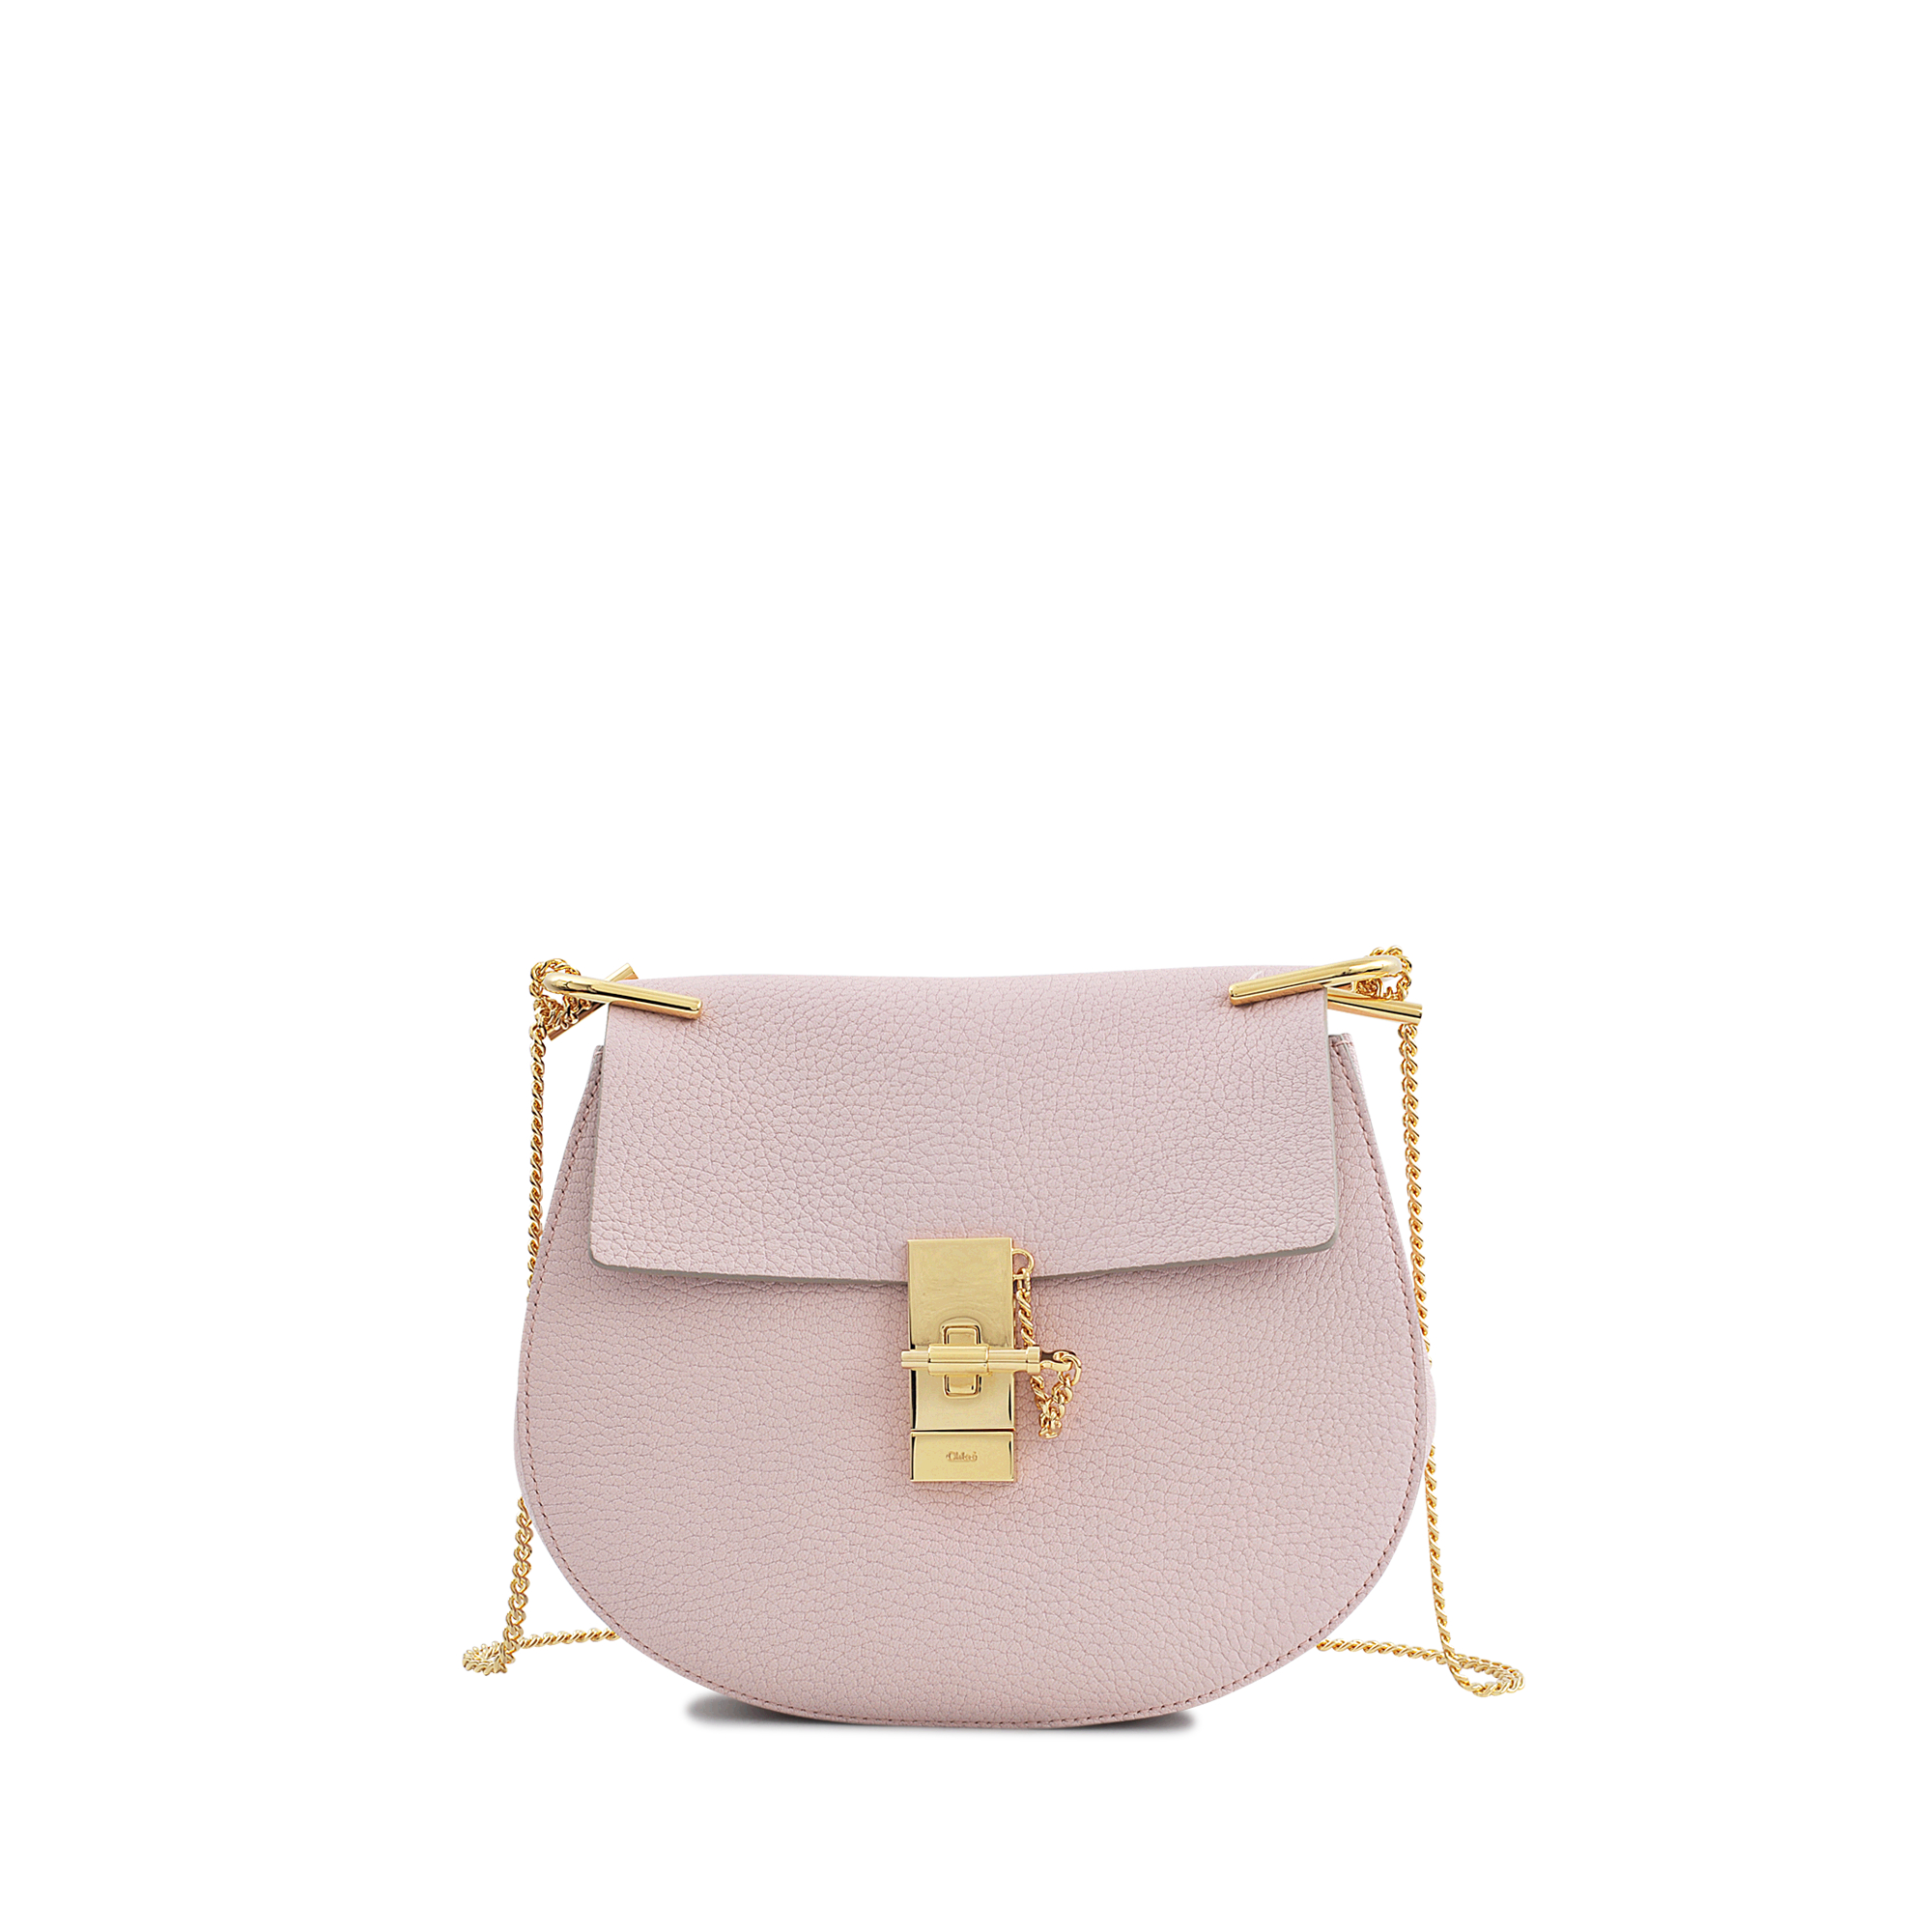 chlo drew small chain bag in pink lyst. Black Bedroom Furniture Sets. Home Design Ideas